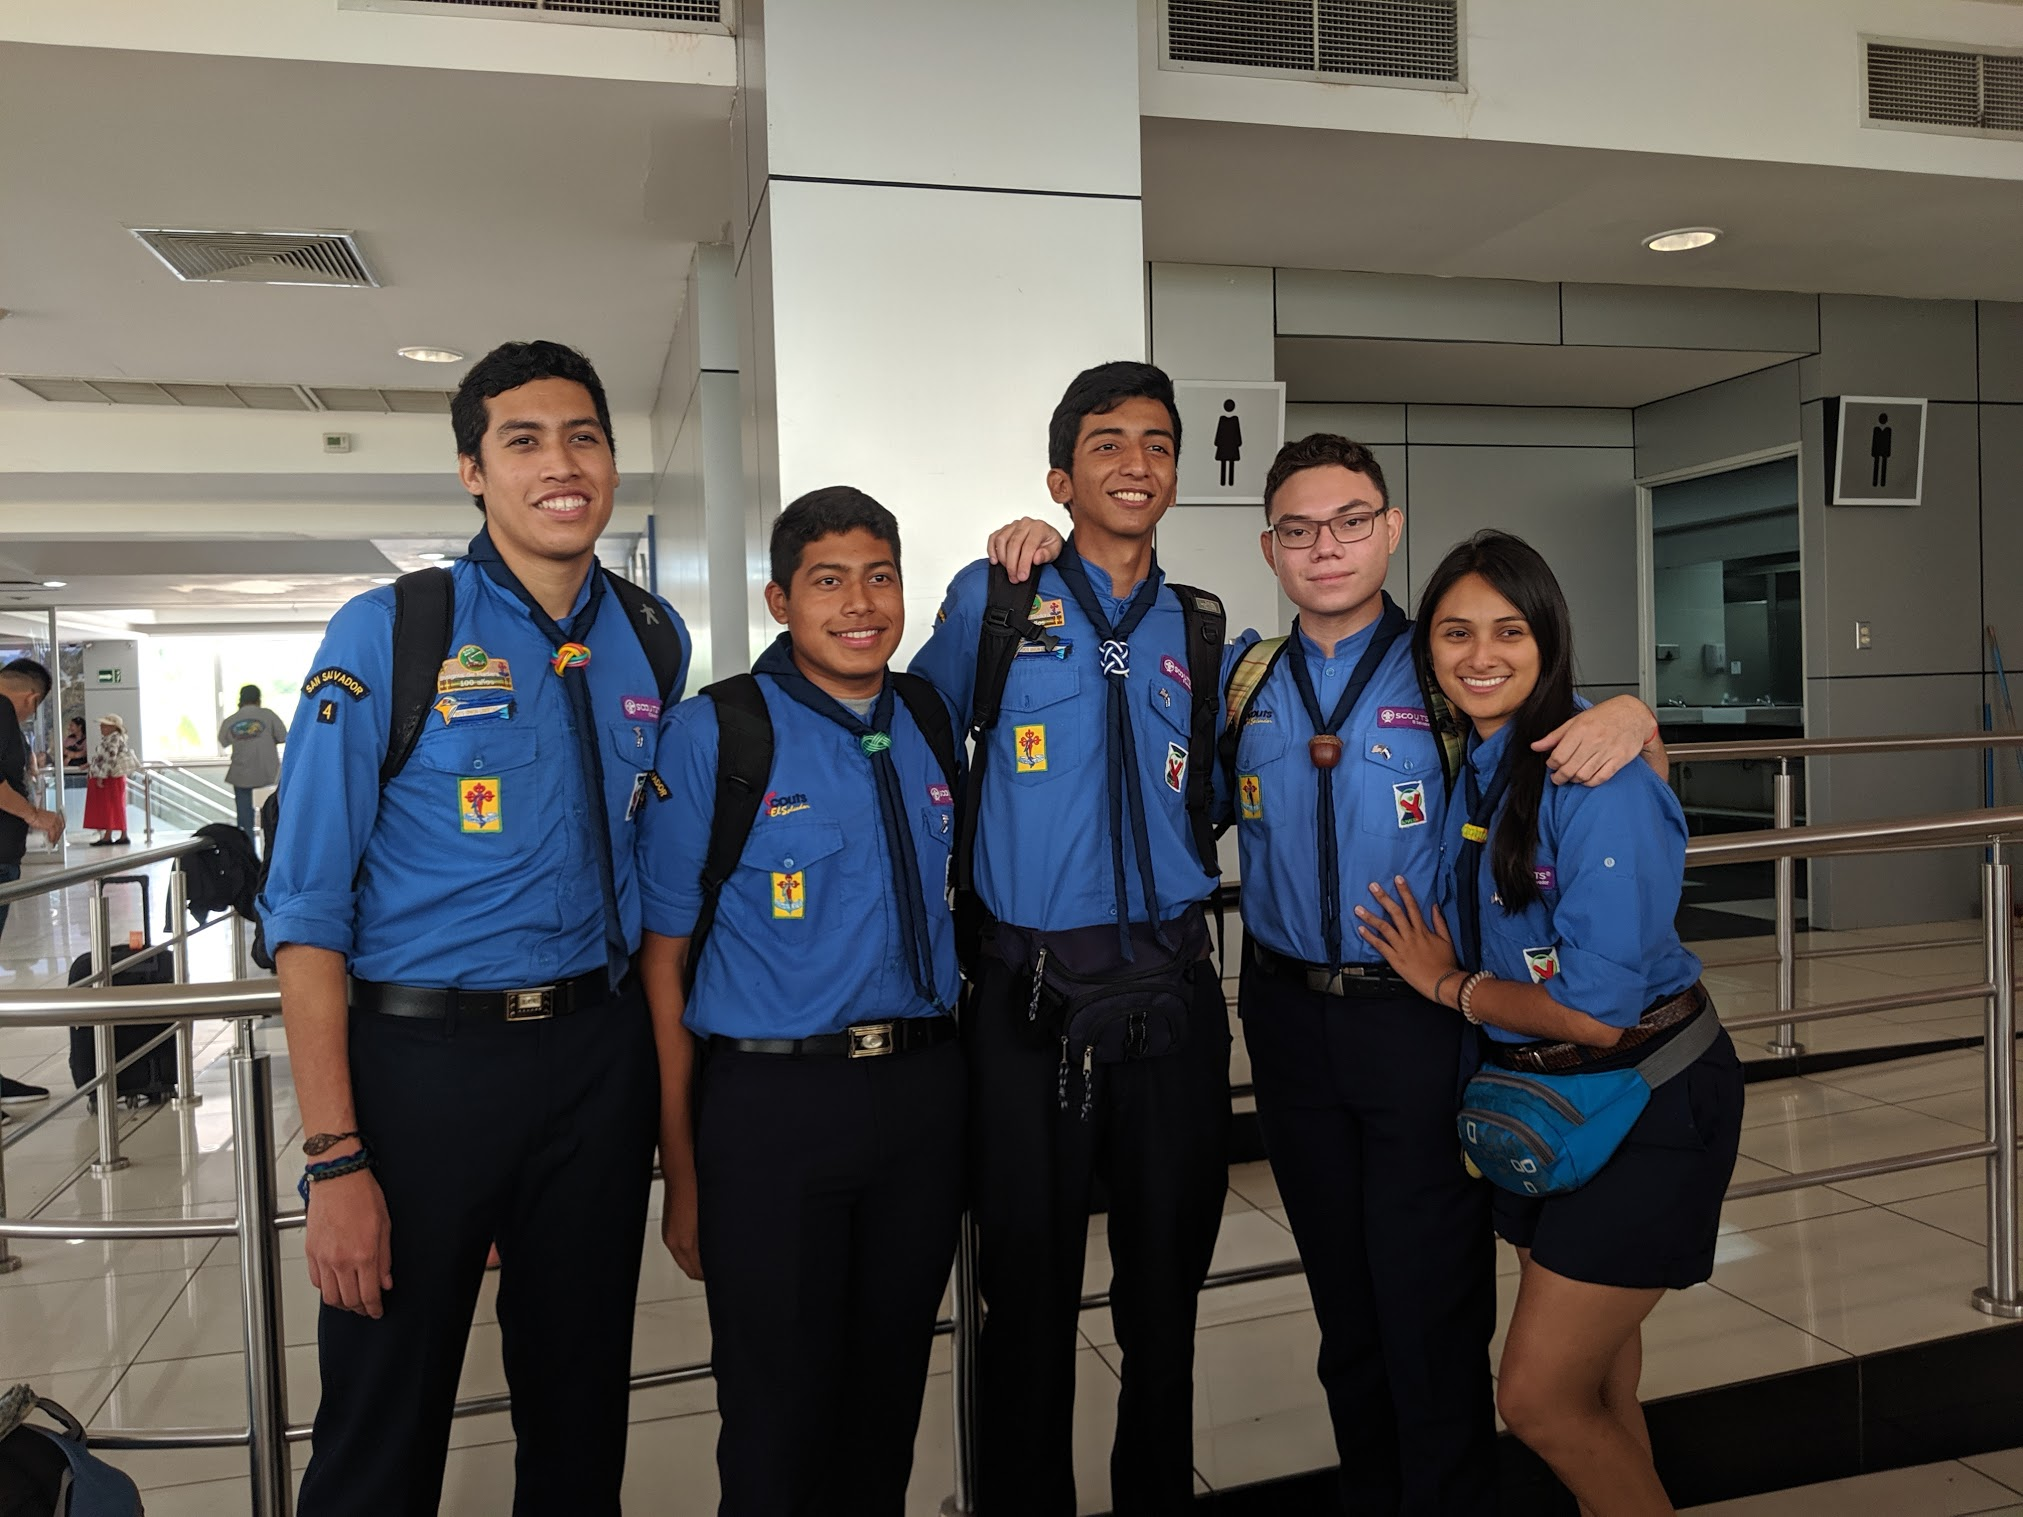 Scouts from El Salvador on their way to the US